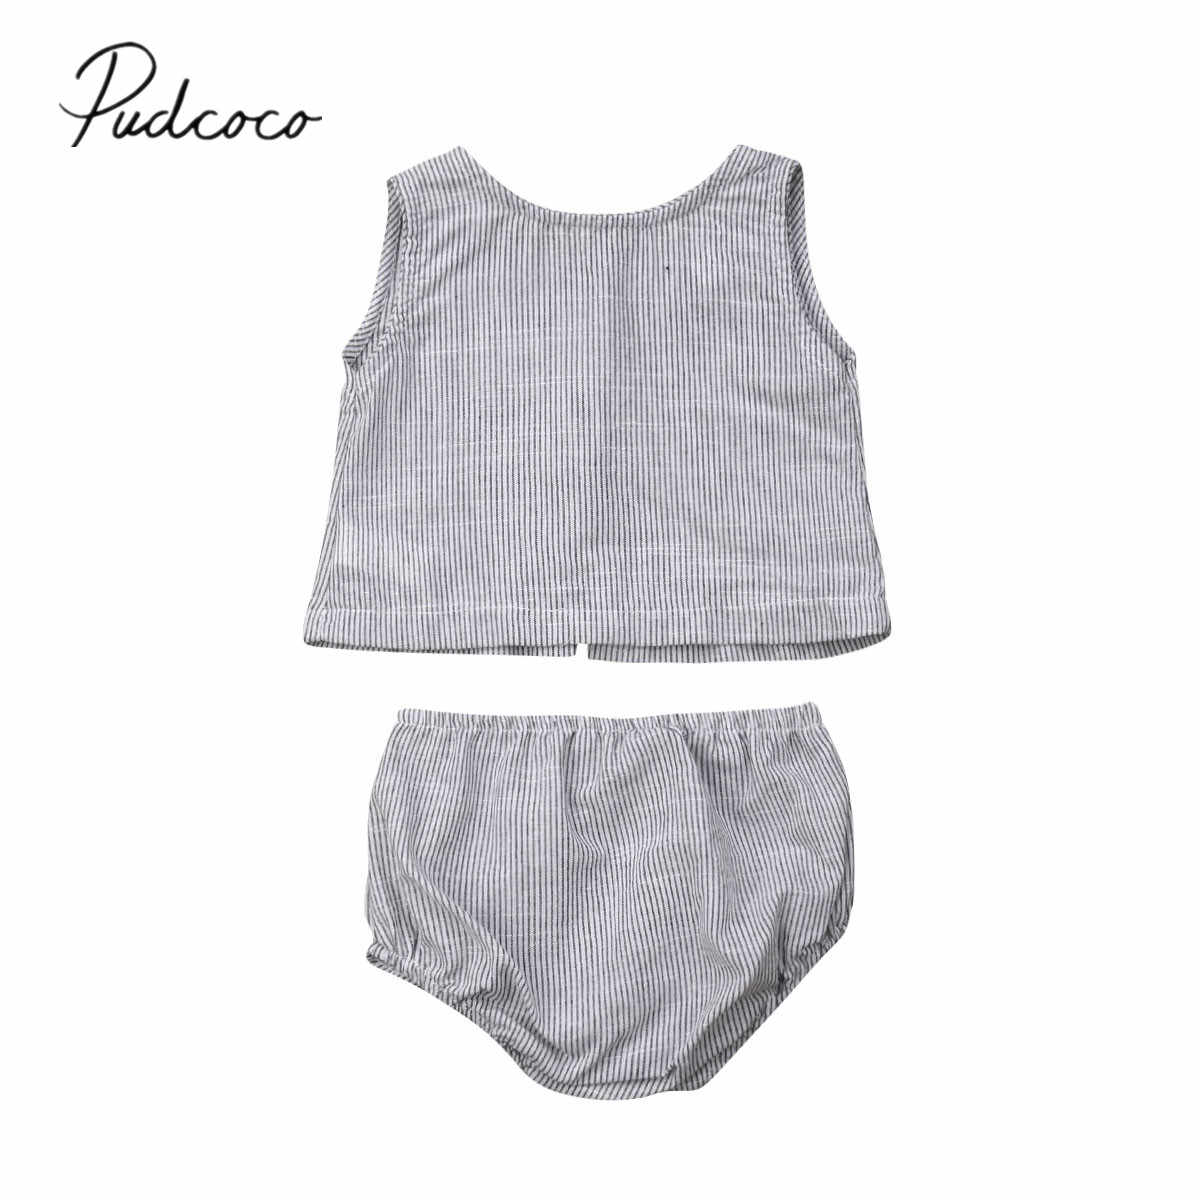 2019 Baby Summer Clothing Newborn Infant Baby Girl Striped Outfit Clothes Sleeveless T-shirt Tops+PP Short Pants Casual Sets